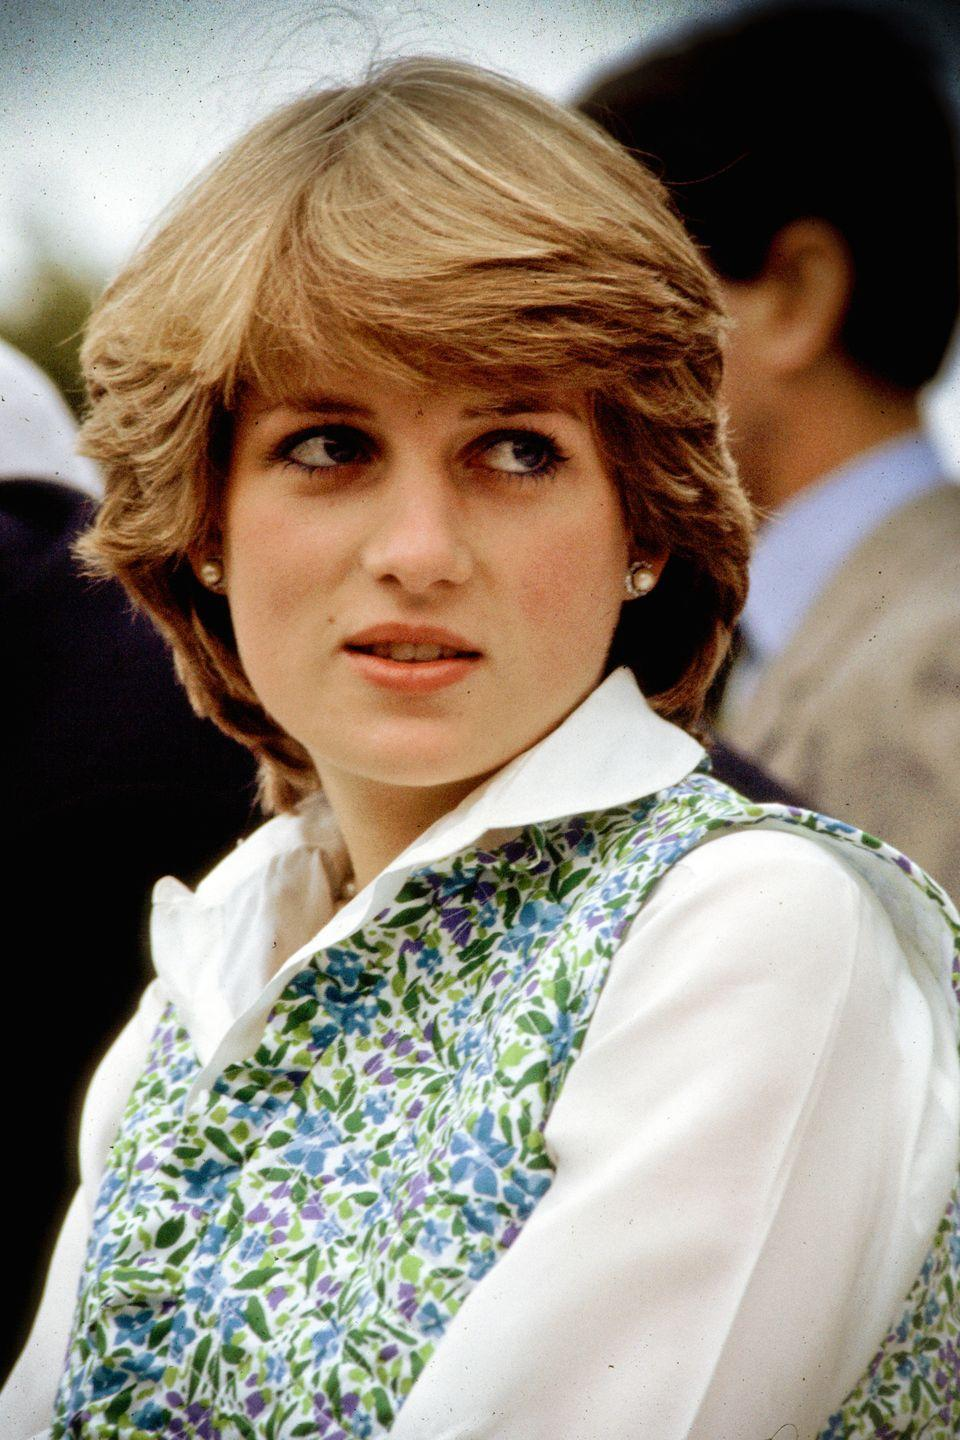 """<p>The constant press attention wore down on Diana. At one polo match that July, """"the persistence of the paparazzi<span class=""""redactor-invisible-space"""">"""" caused the 20-year-old to start crying, the </span><a href=""""https://www.washingtonpost.com/archive/lifestyle/1981/07/27/the-royal-wedding/2e354acb-034c-4781-abd6-e247ffc693b2/?utm_term=.0fb56506e105"""" rel=""""nofollow noopener"""" target=""""_blank"""" data-ylk=""""slk:Washington Post"""" class=""""link rapid-noclick-resp""""><em>Washington Post</em></a><span class=""""redactor-invisible-space""""> reported at the time. With her wedding only a few days away, her life in the spotlight had officially begun. </span></p>"""